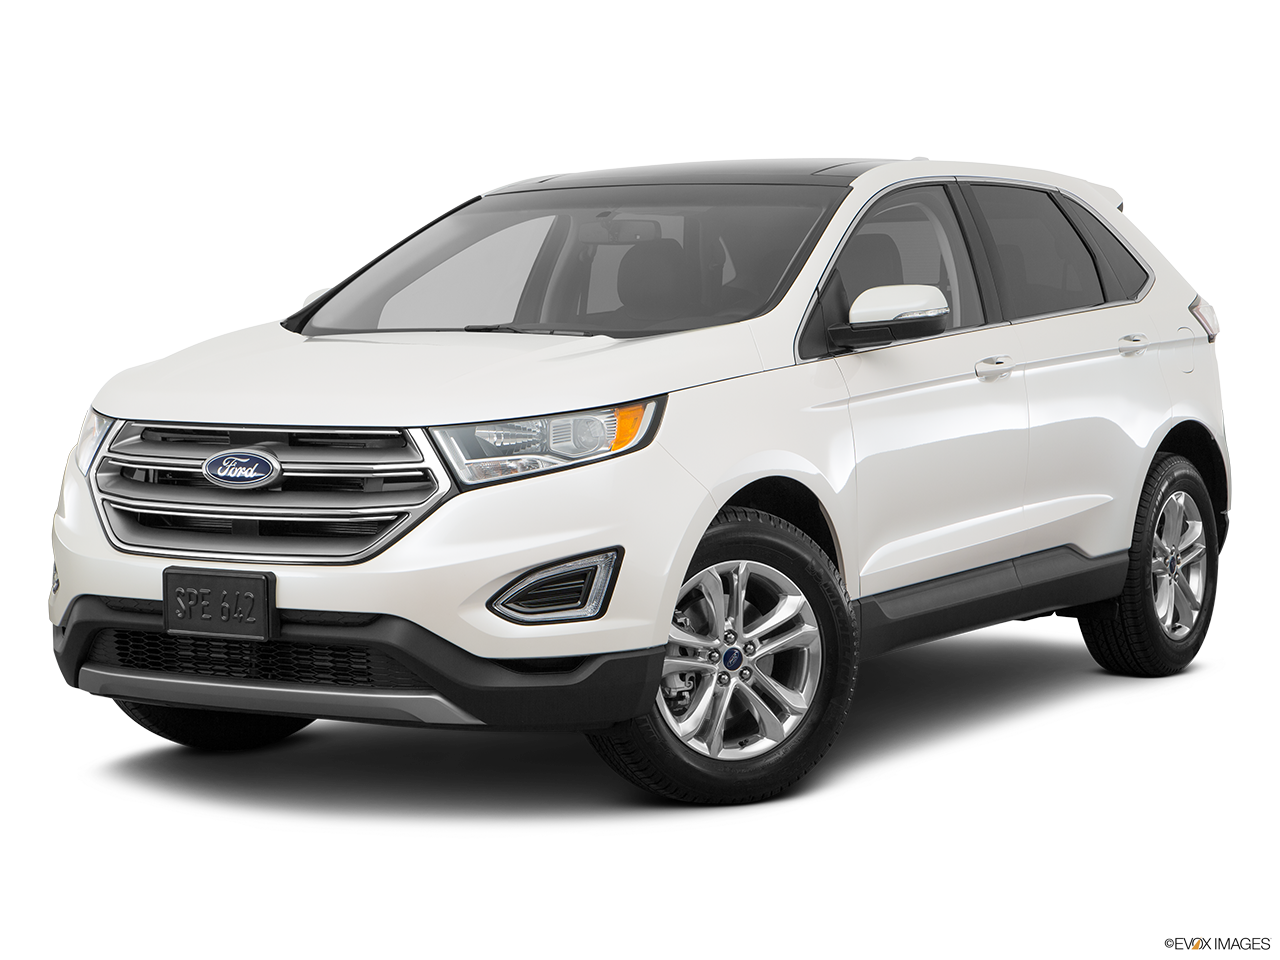 Test Drive A 2017 Ford Edge at Sunnyvale Ford in Sunnyvale